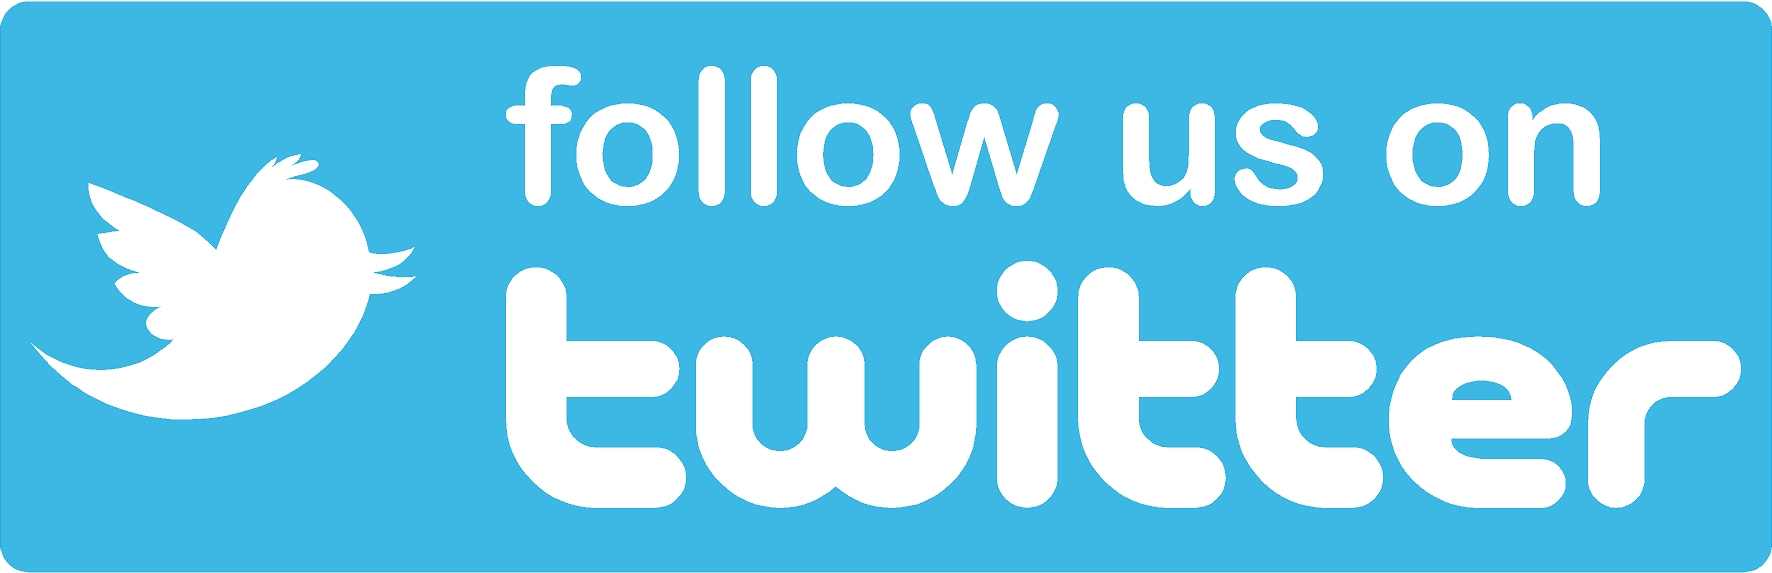 followusontwitterlogo.jpg